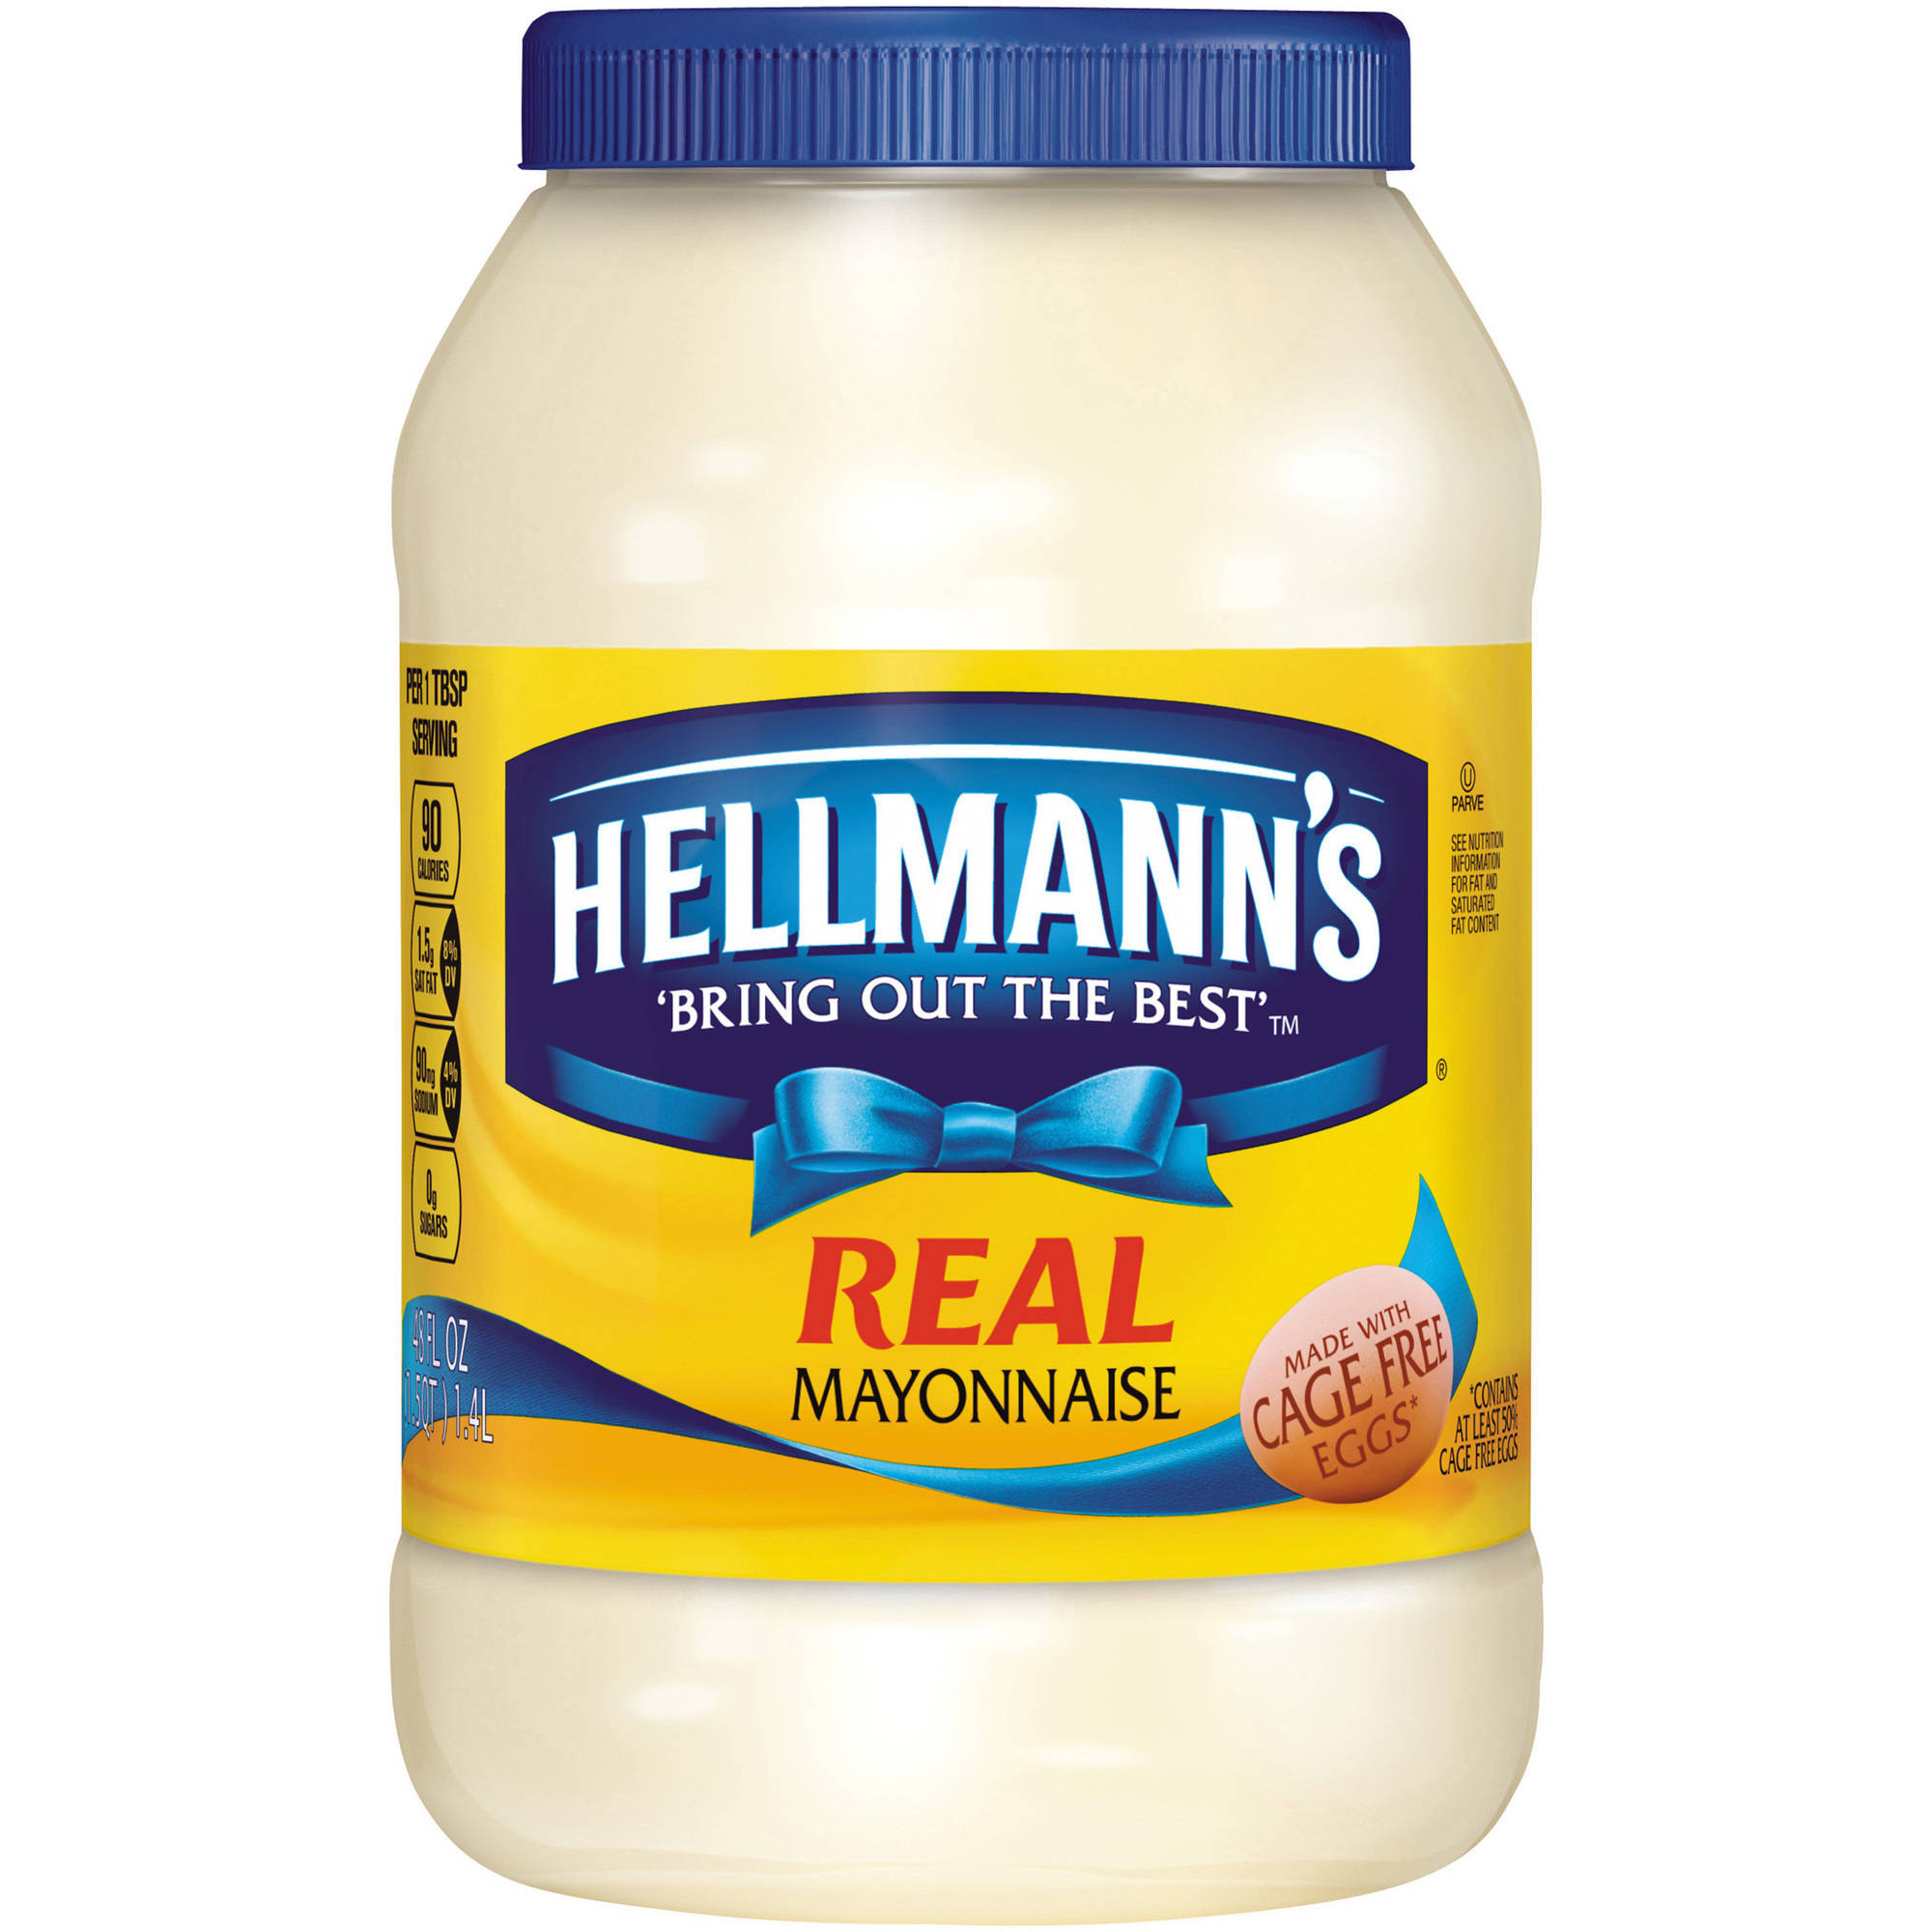 Hellmann's Real Mayonnaise, 48 oz